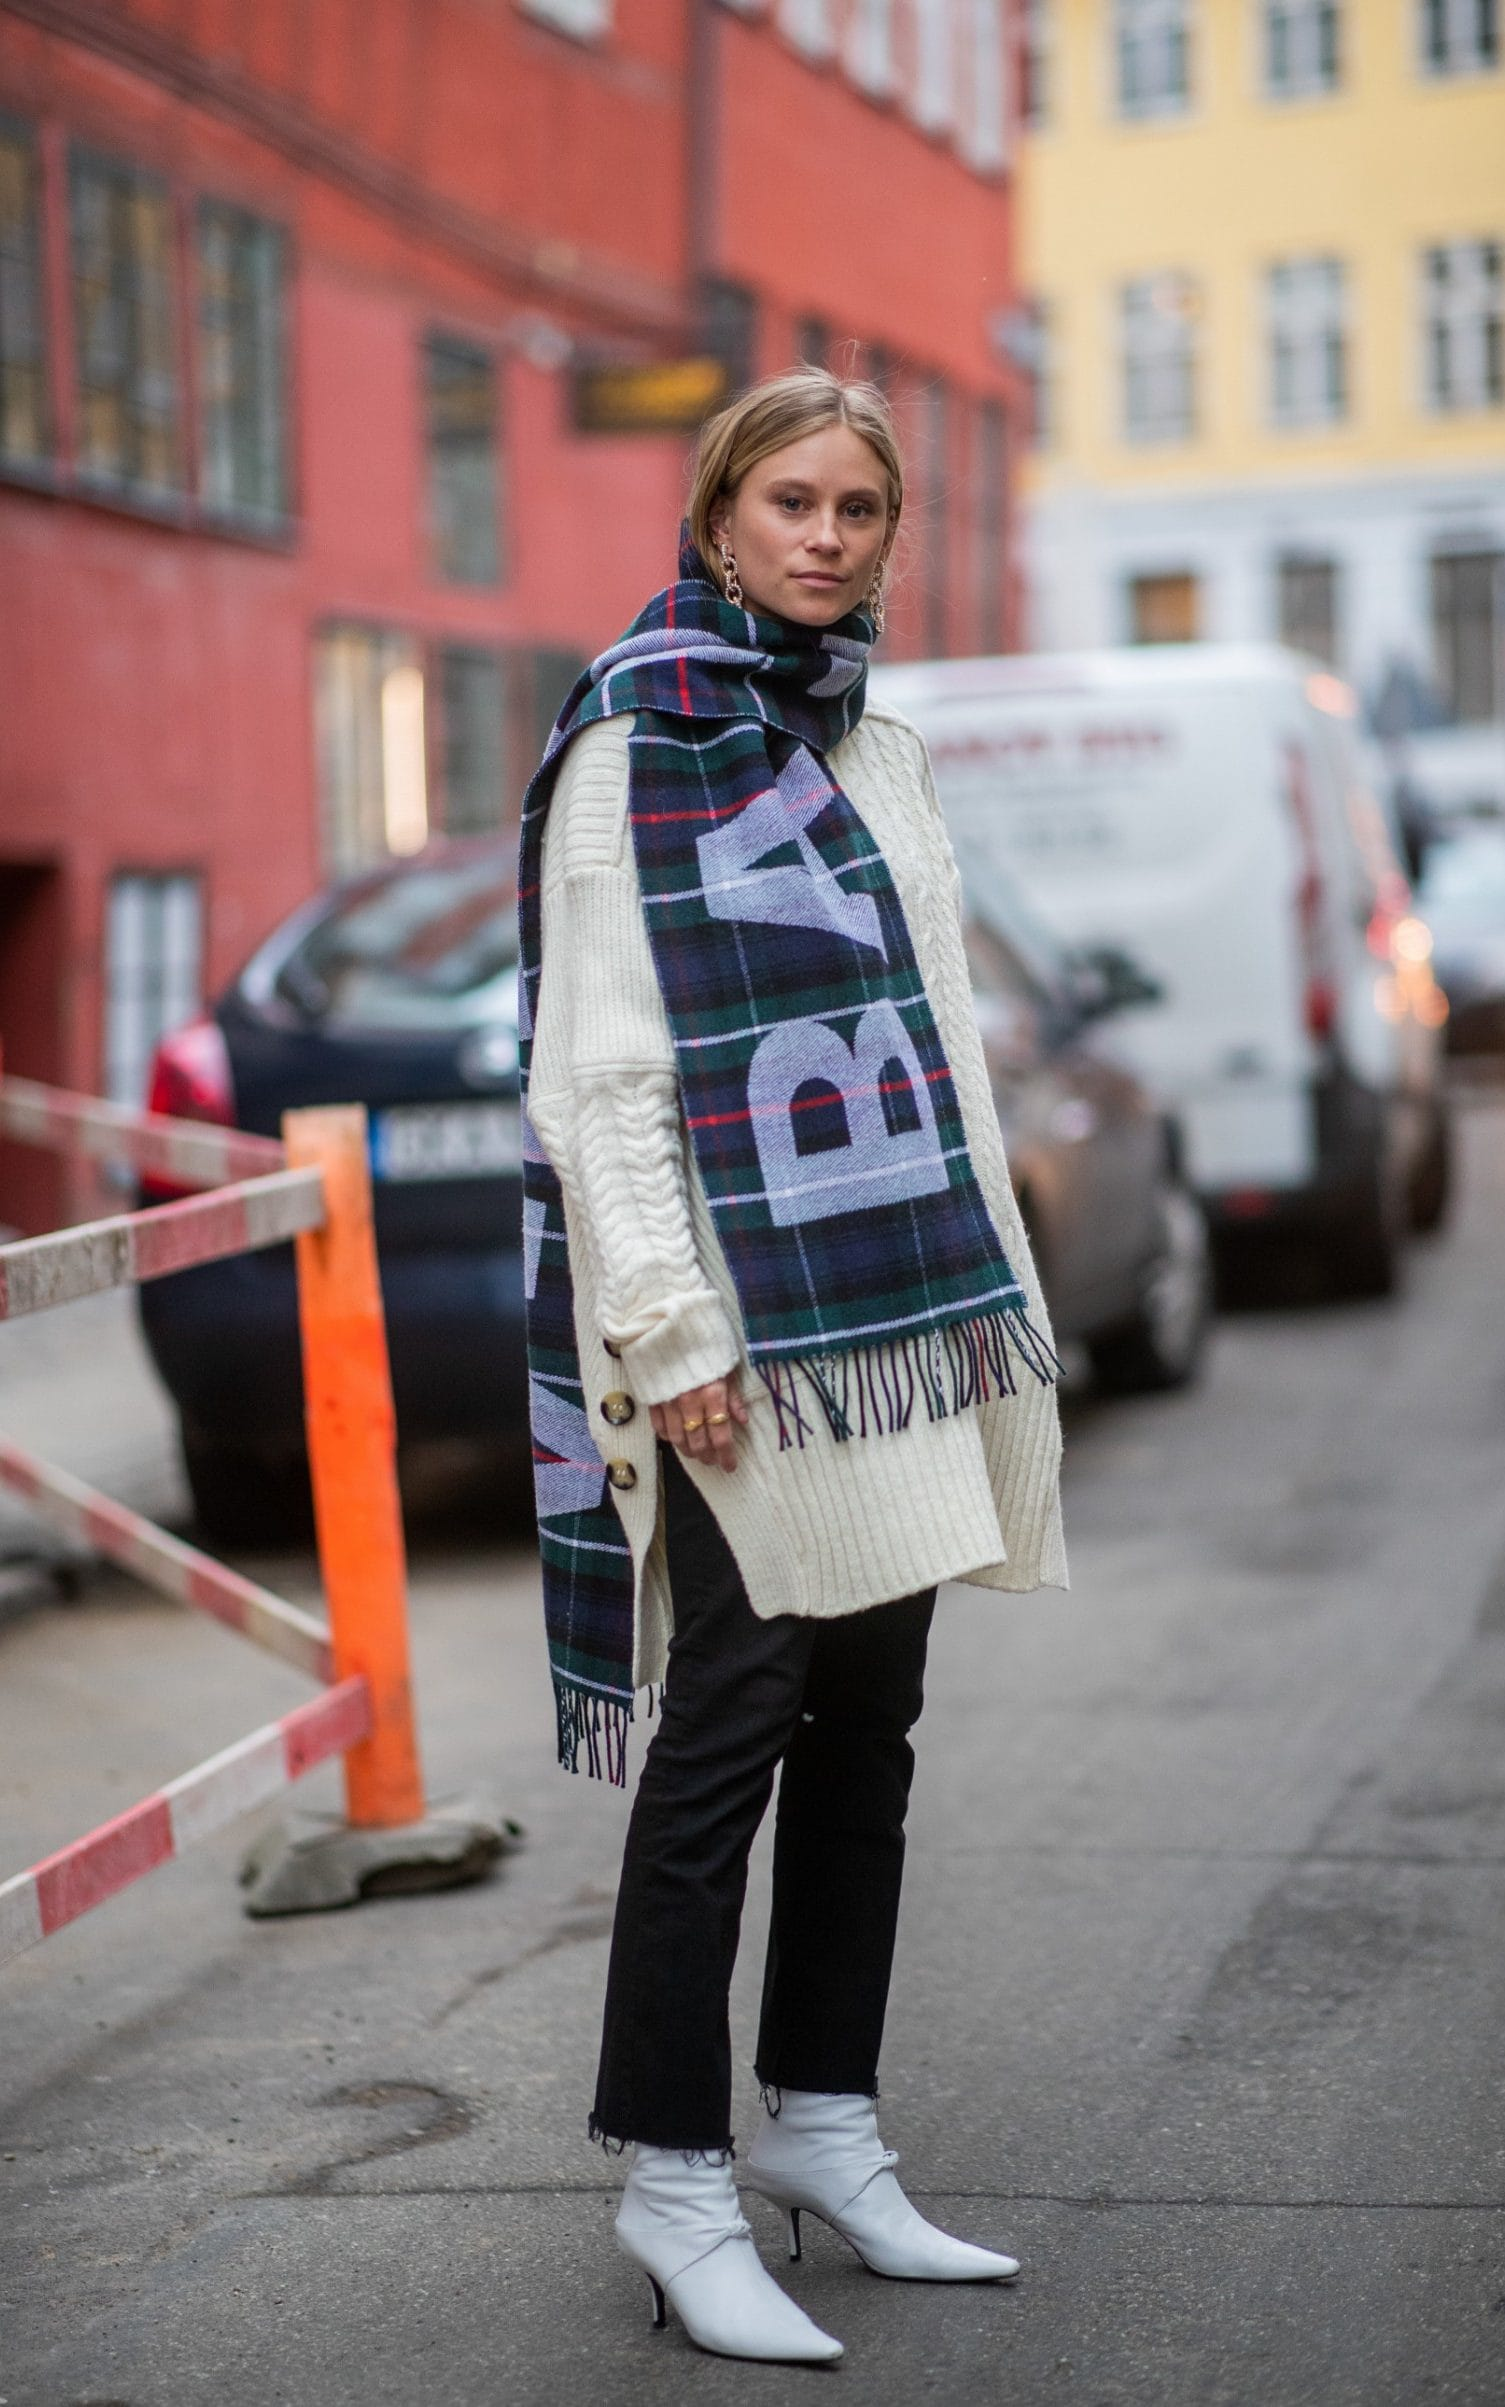 Tine Andrea looks effortlessly chic in her oversize knit, jeans and white boots but adds a bit of va va voom with the Balenciaga scarf.